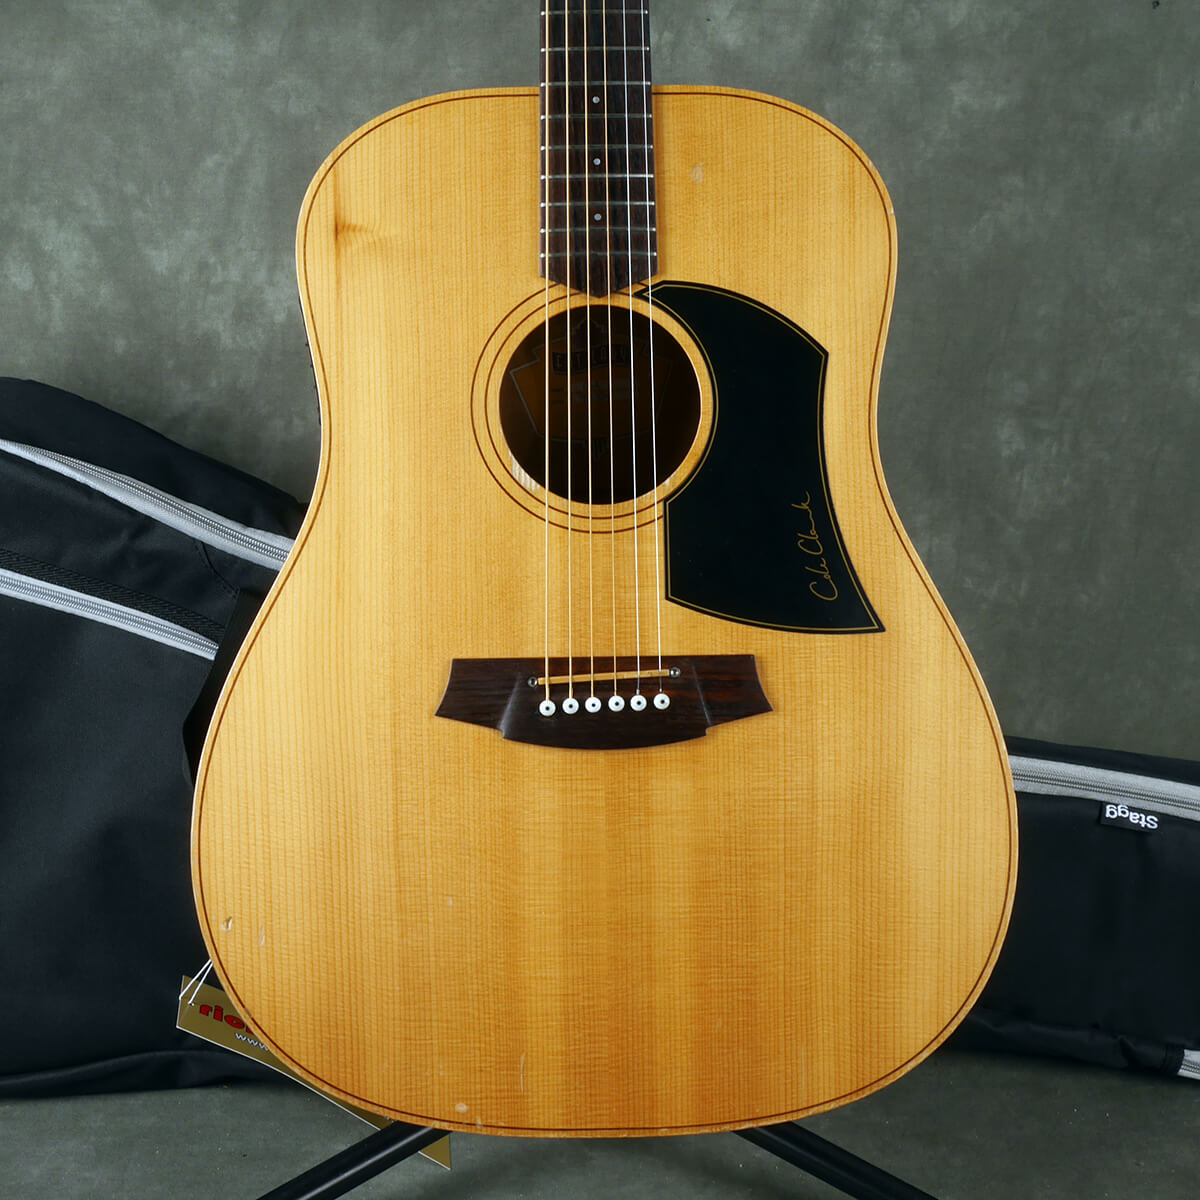 Cole Clark Fat Lady Acoustic Guitar - Natural w/Gig Bag - 2nd Hand